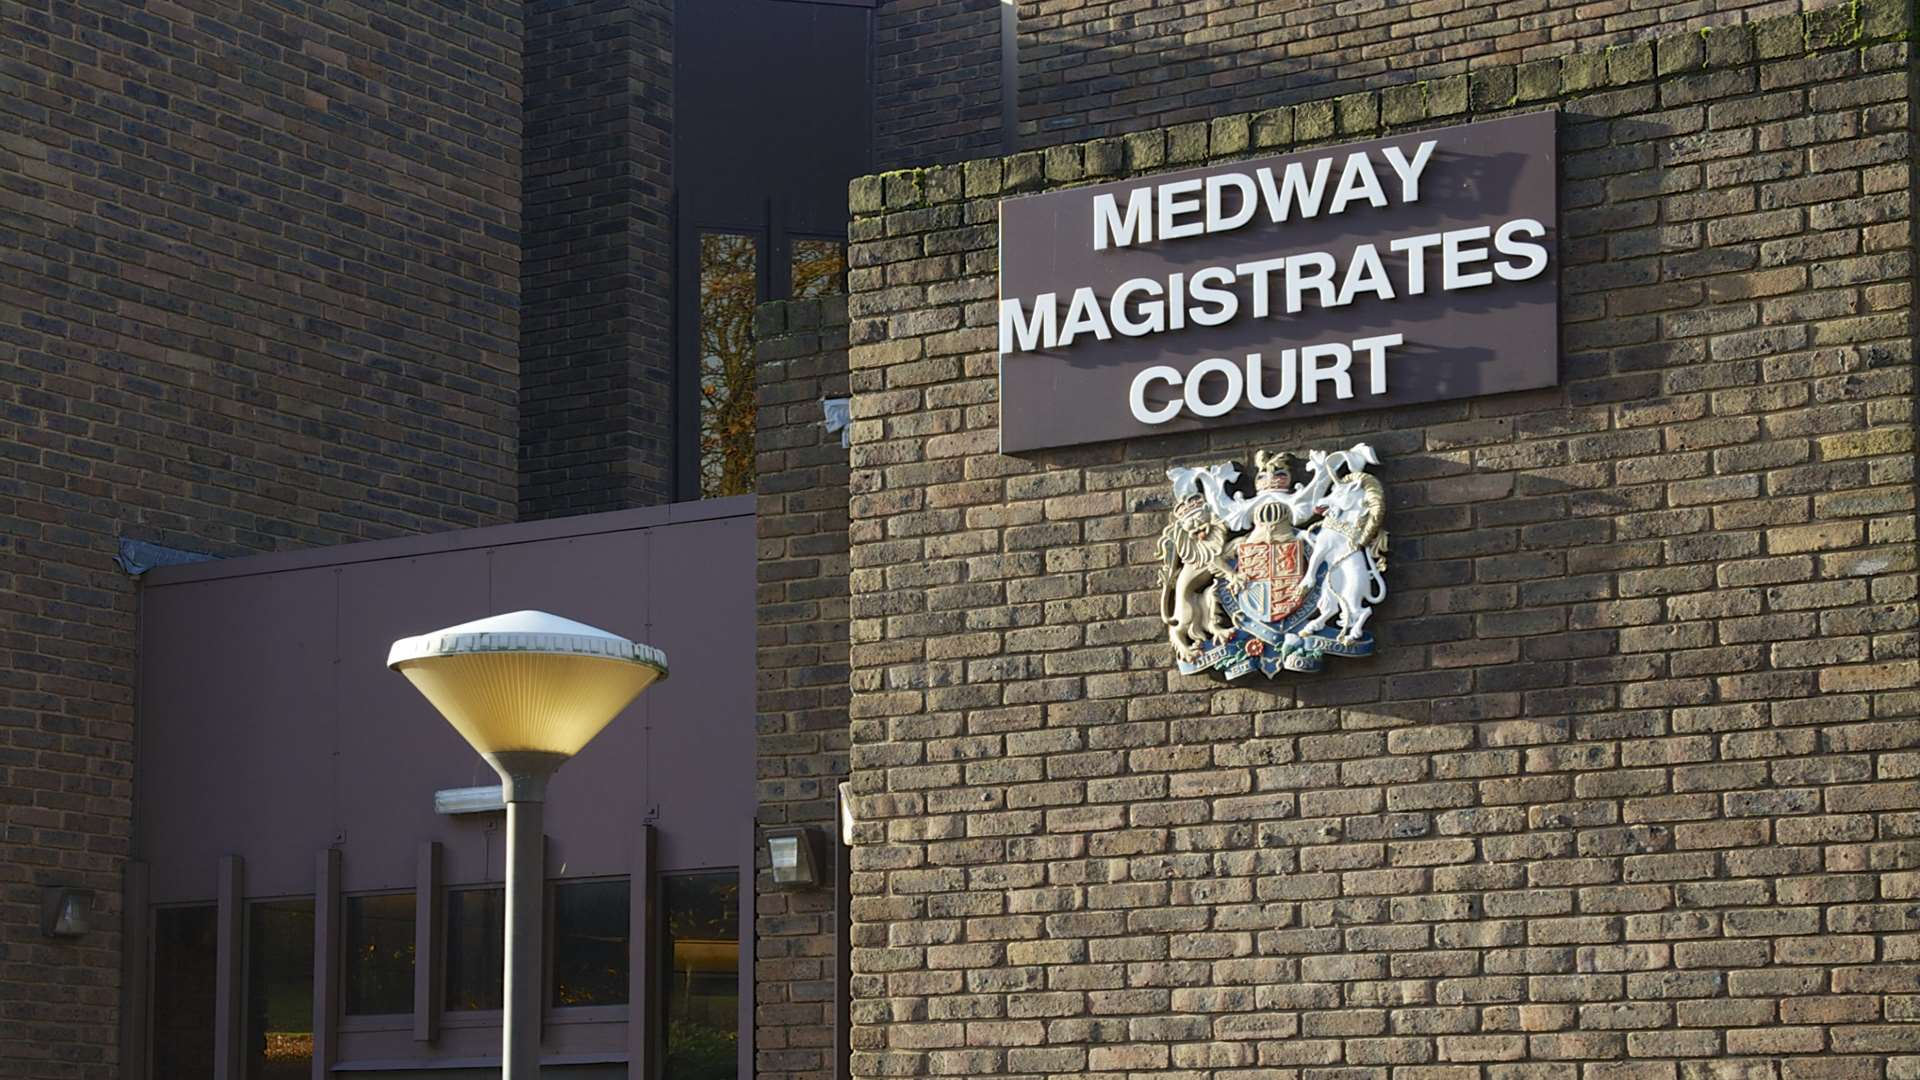 The case was heard at Medway Magistrates' Court